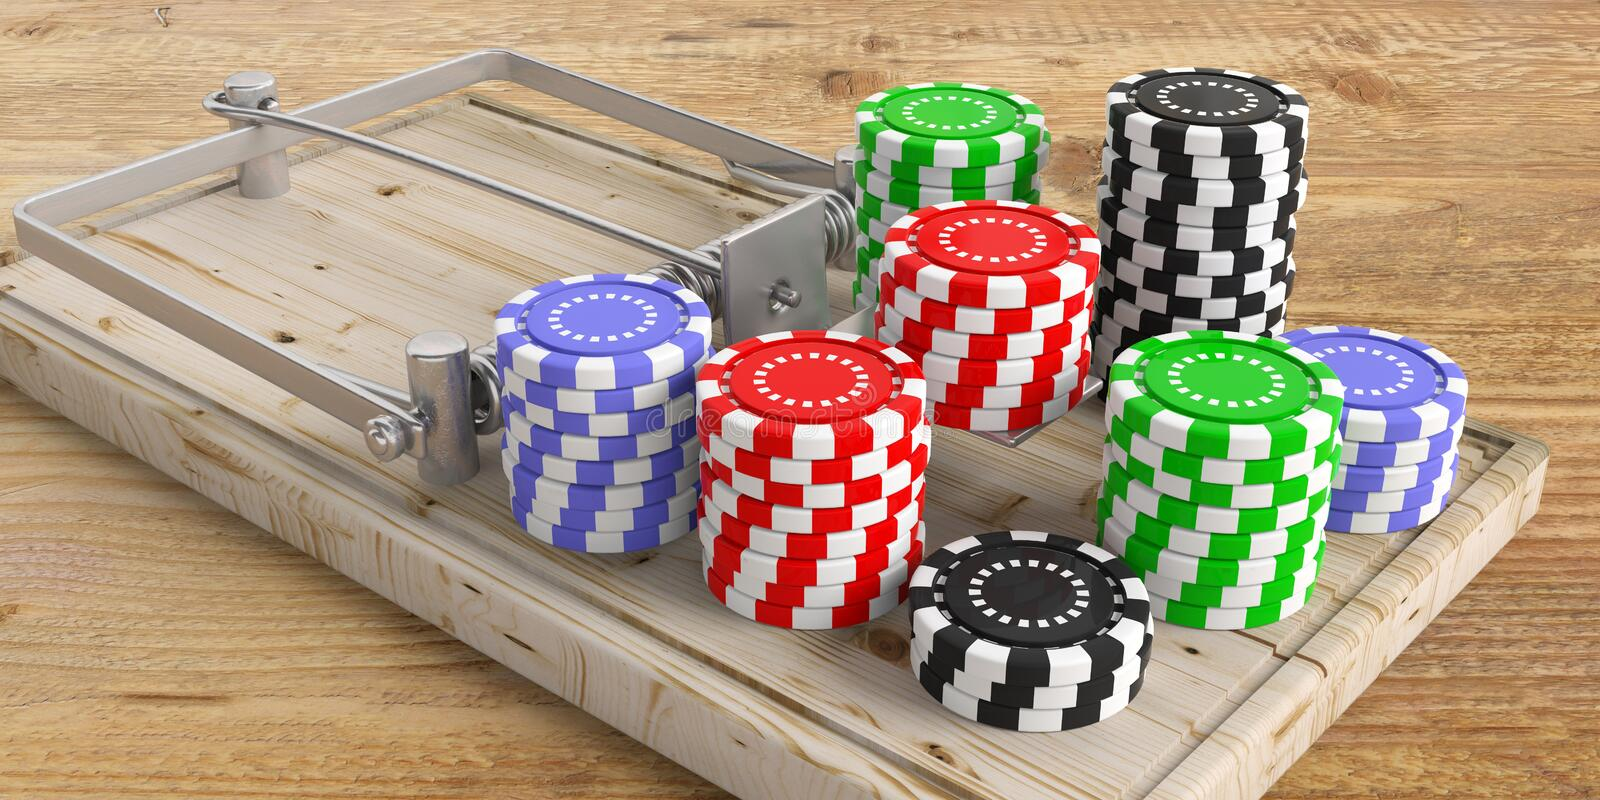 Gambling addiction. Casino poker chips on a mouse trap on wooden floor. 3d illustration. Gambling addiction concept. Casino poker chips on a mouse trap on wooden stock illustration